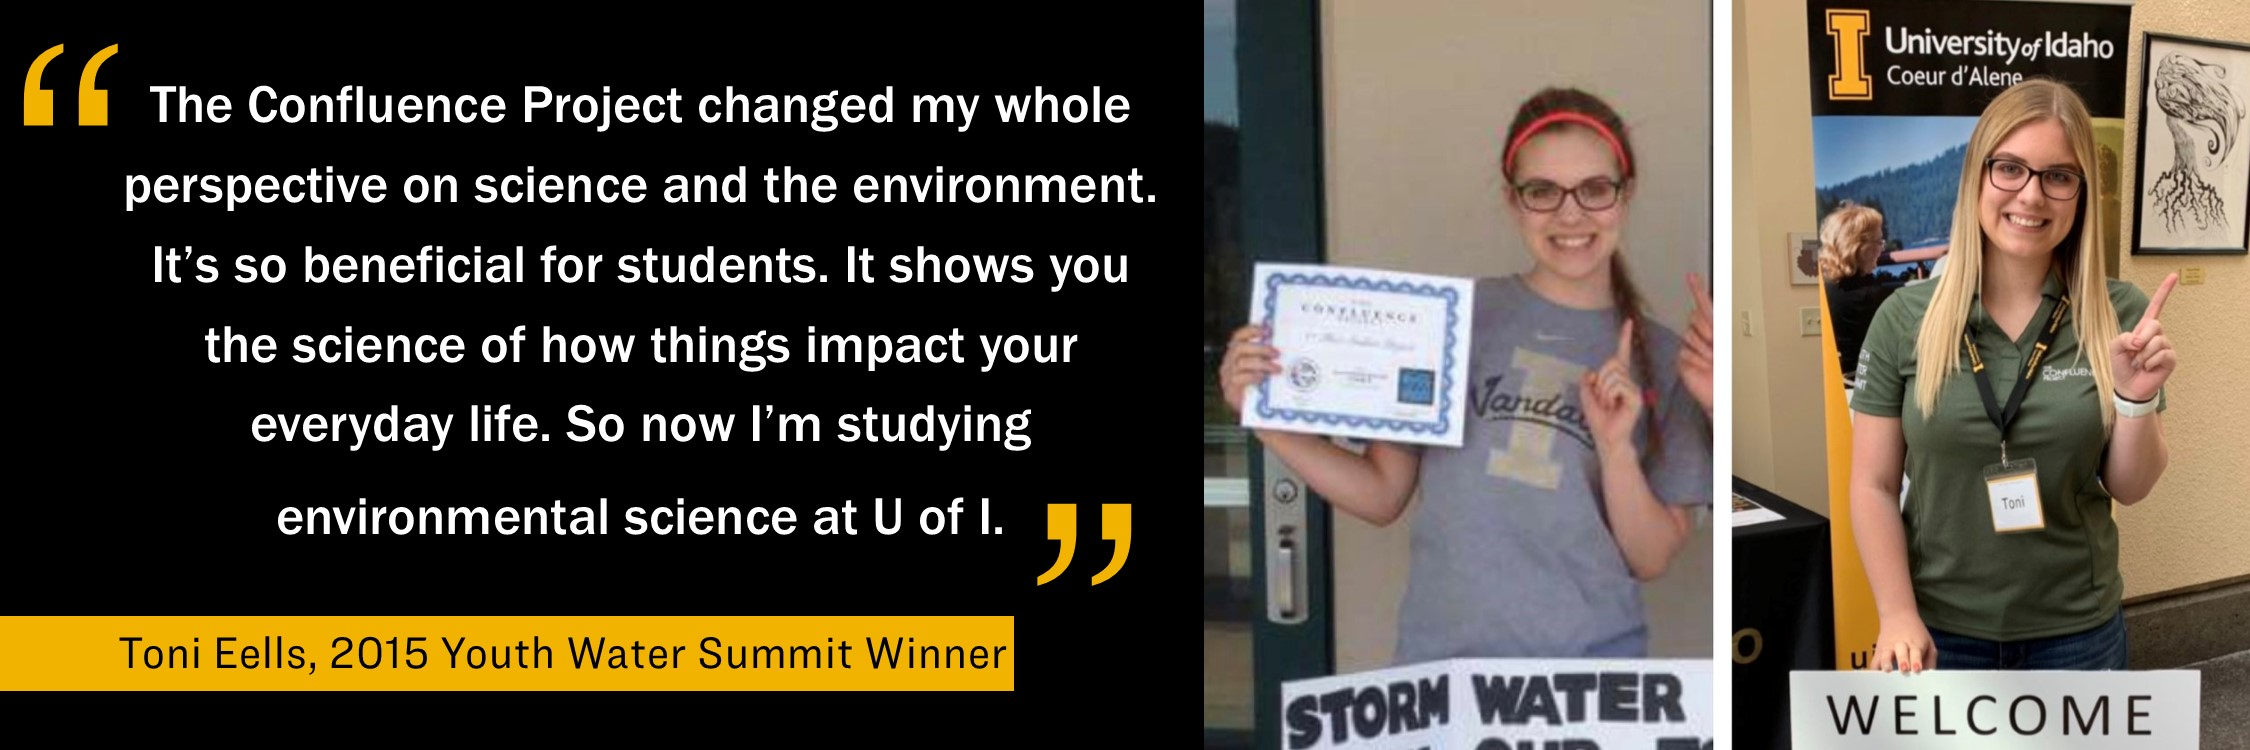 "The Confluence Project changed my whole perspective on science and the environment. It's so beneficial for students. It shows you the science of how things impact your everyday life. So now I'm studying environmental science at U of I."" Toni Eells, 2015 Youth Water Summit Winner"